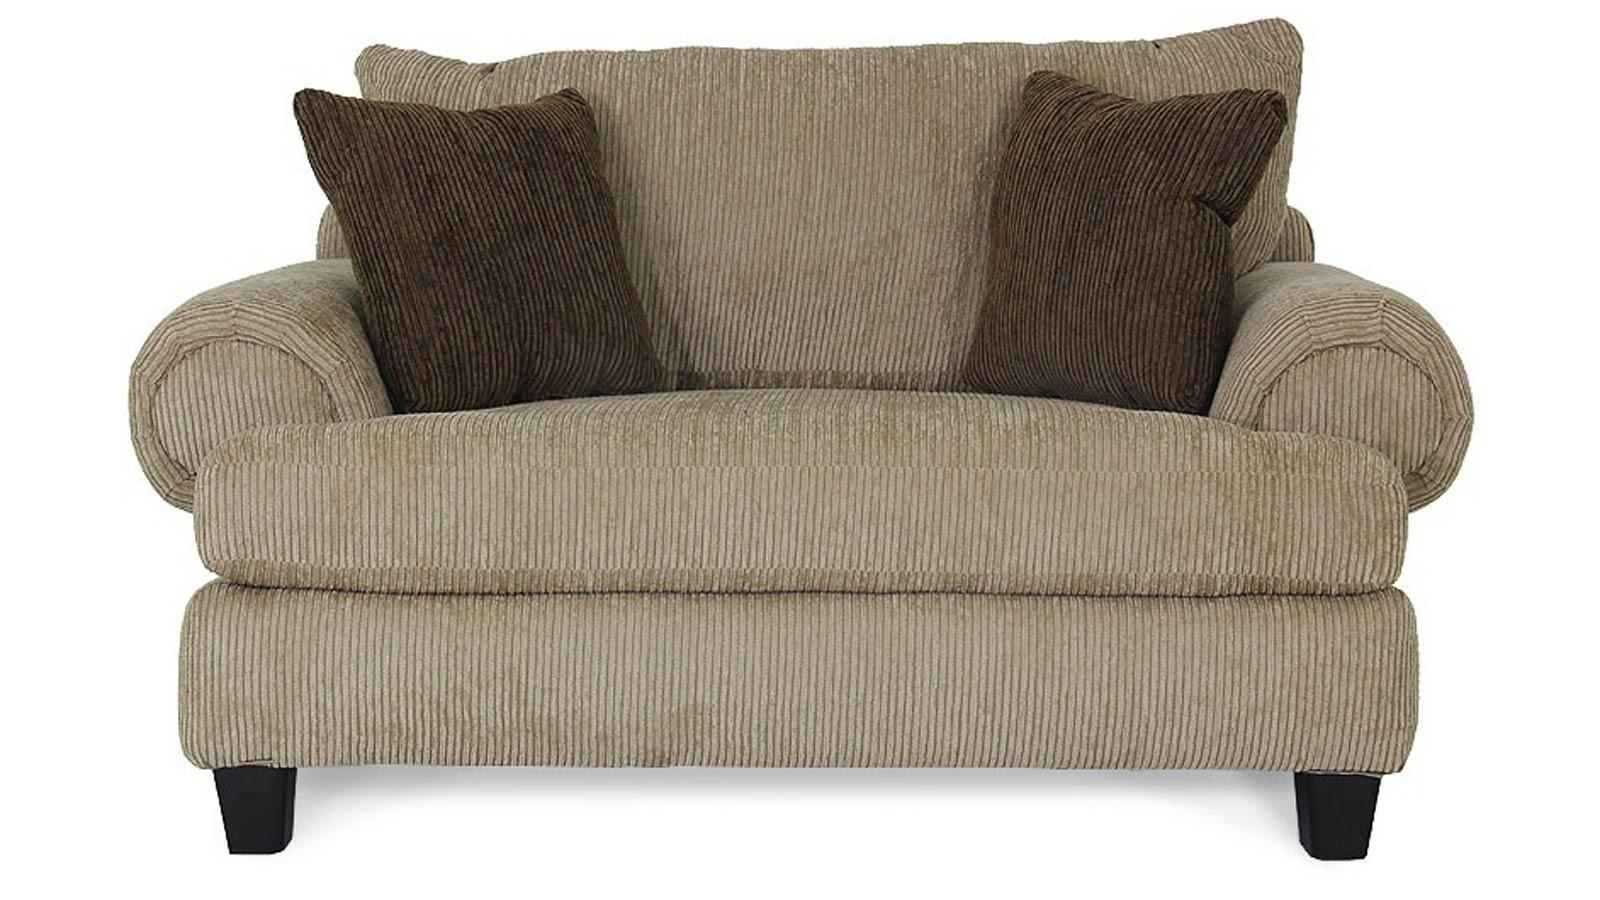 Brenham Chair | Gallery Furniture Within Allen White Sofas (View 15 of 20)